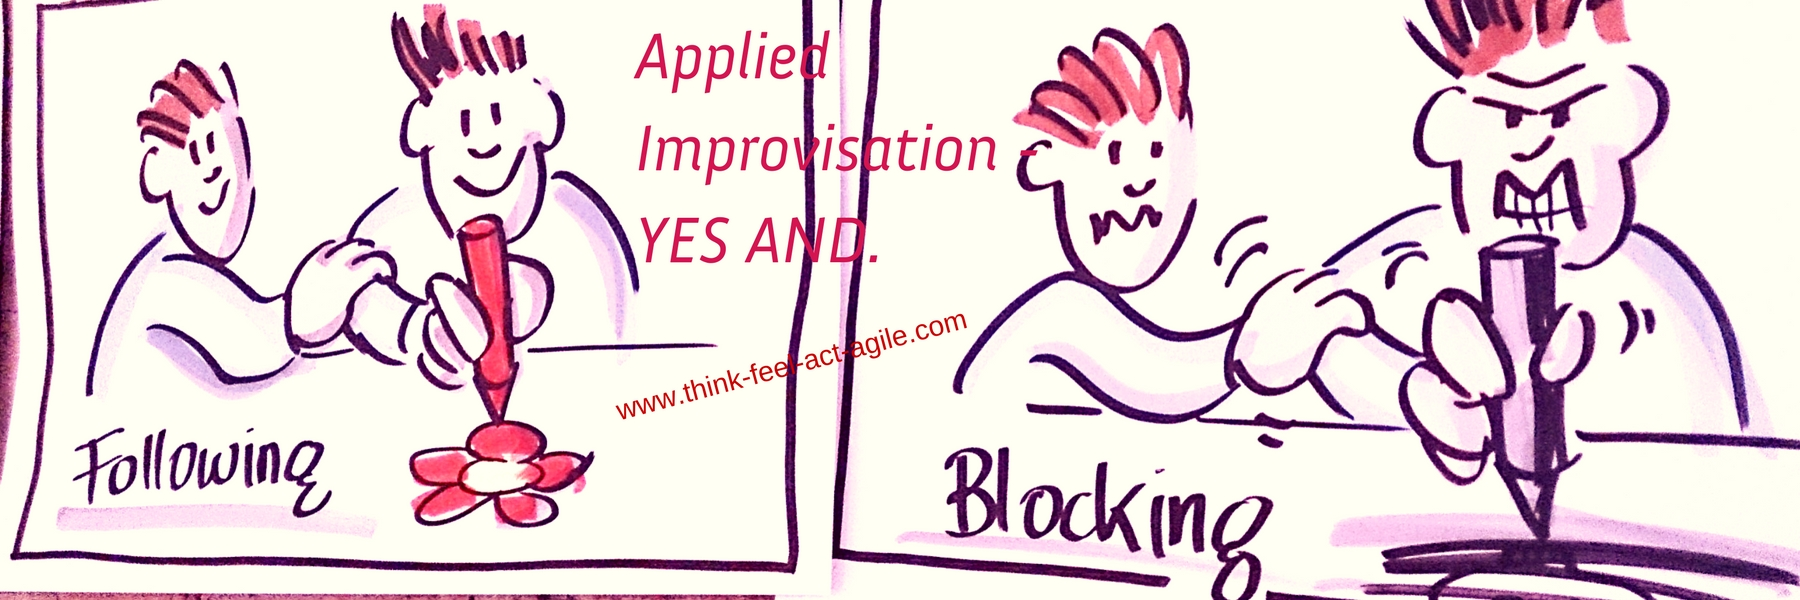 AIN-Conference_Applied Improv-Agile Yes And